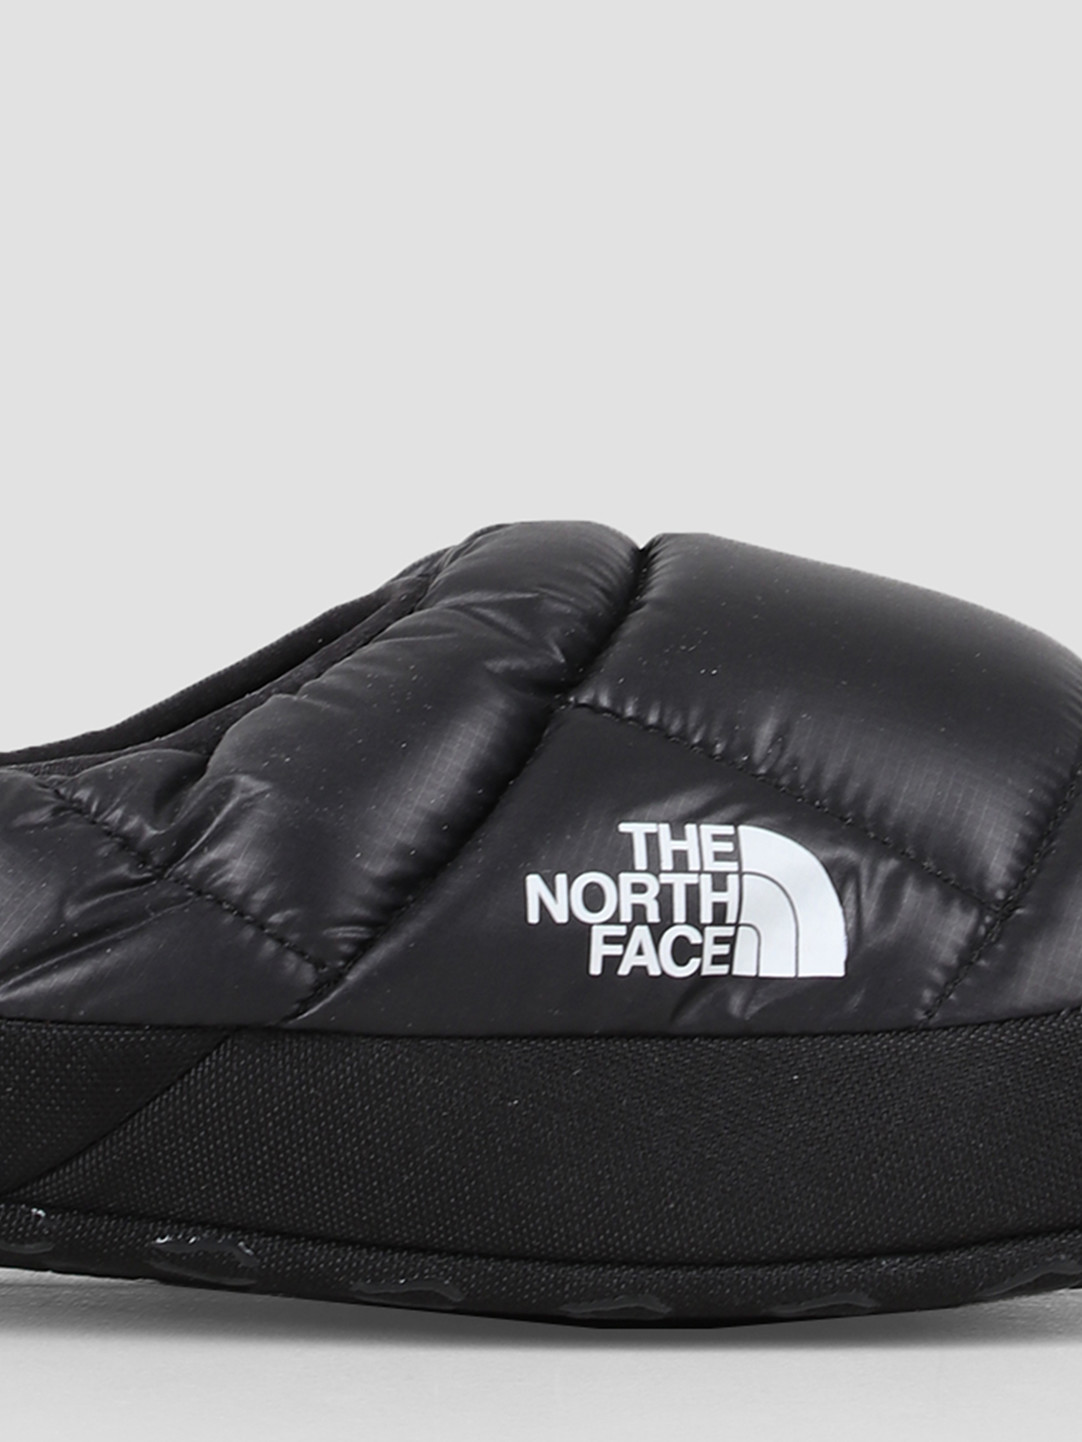 The North Face The North Face NSE Tent Mule III Black Black T0AWMGKX7